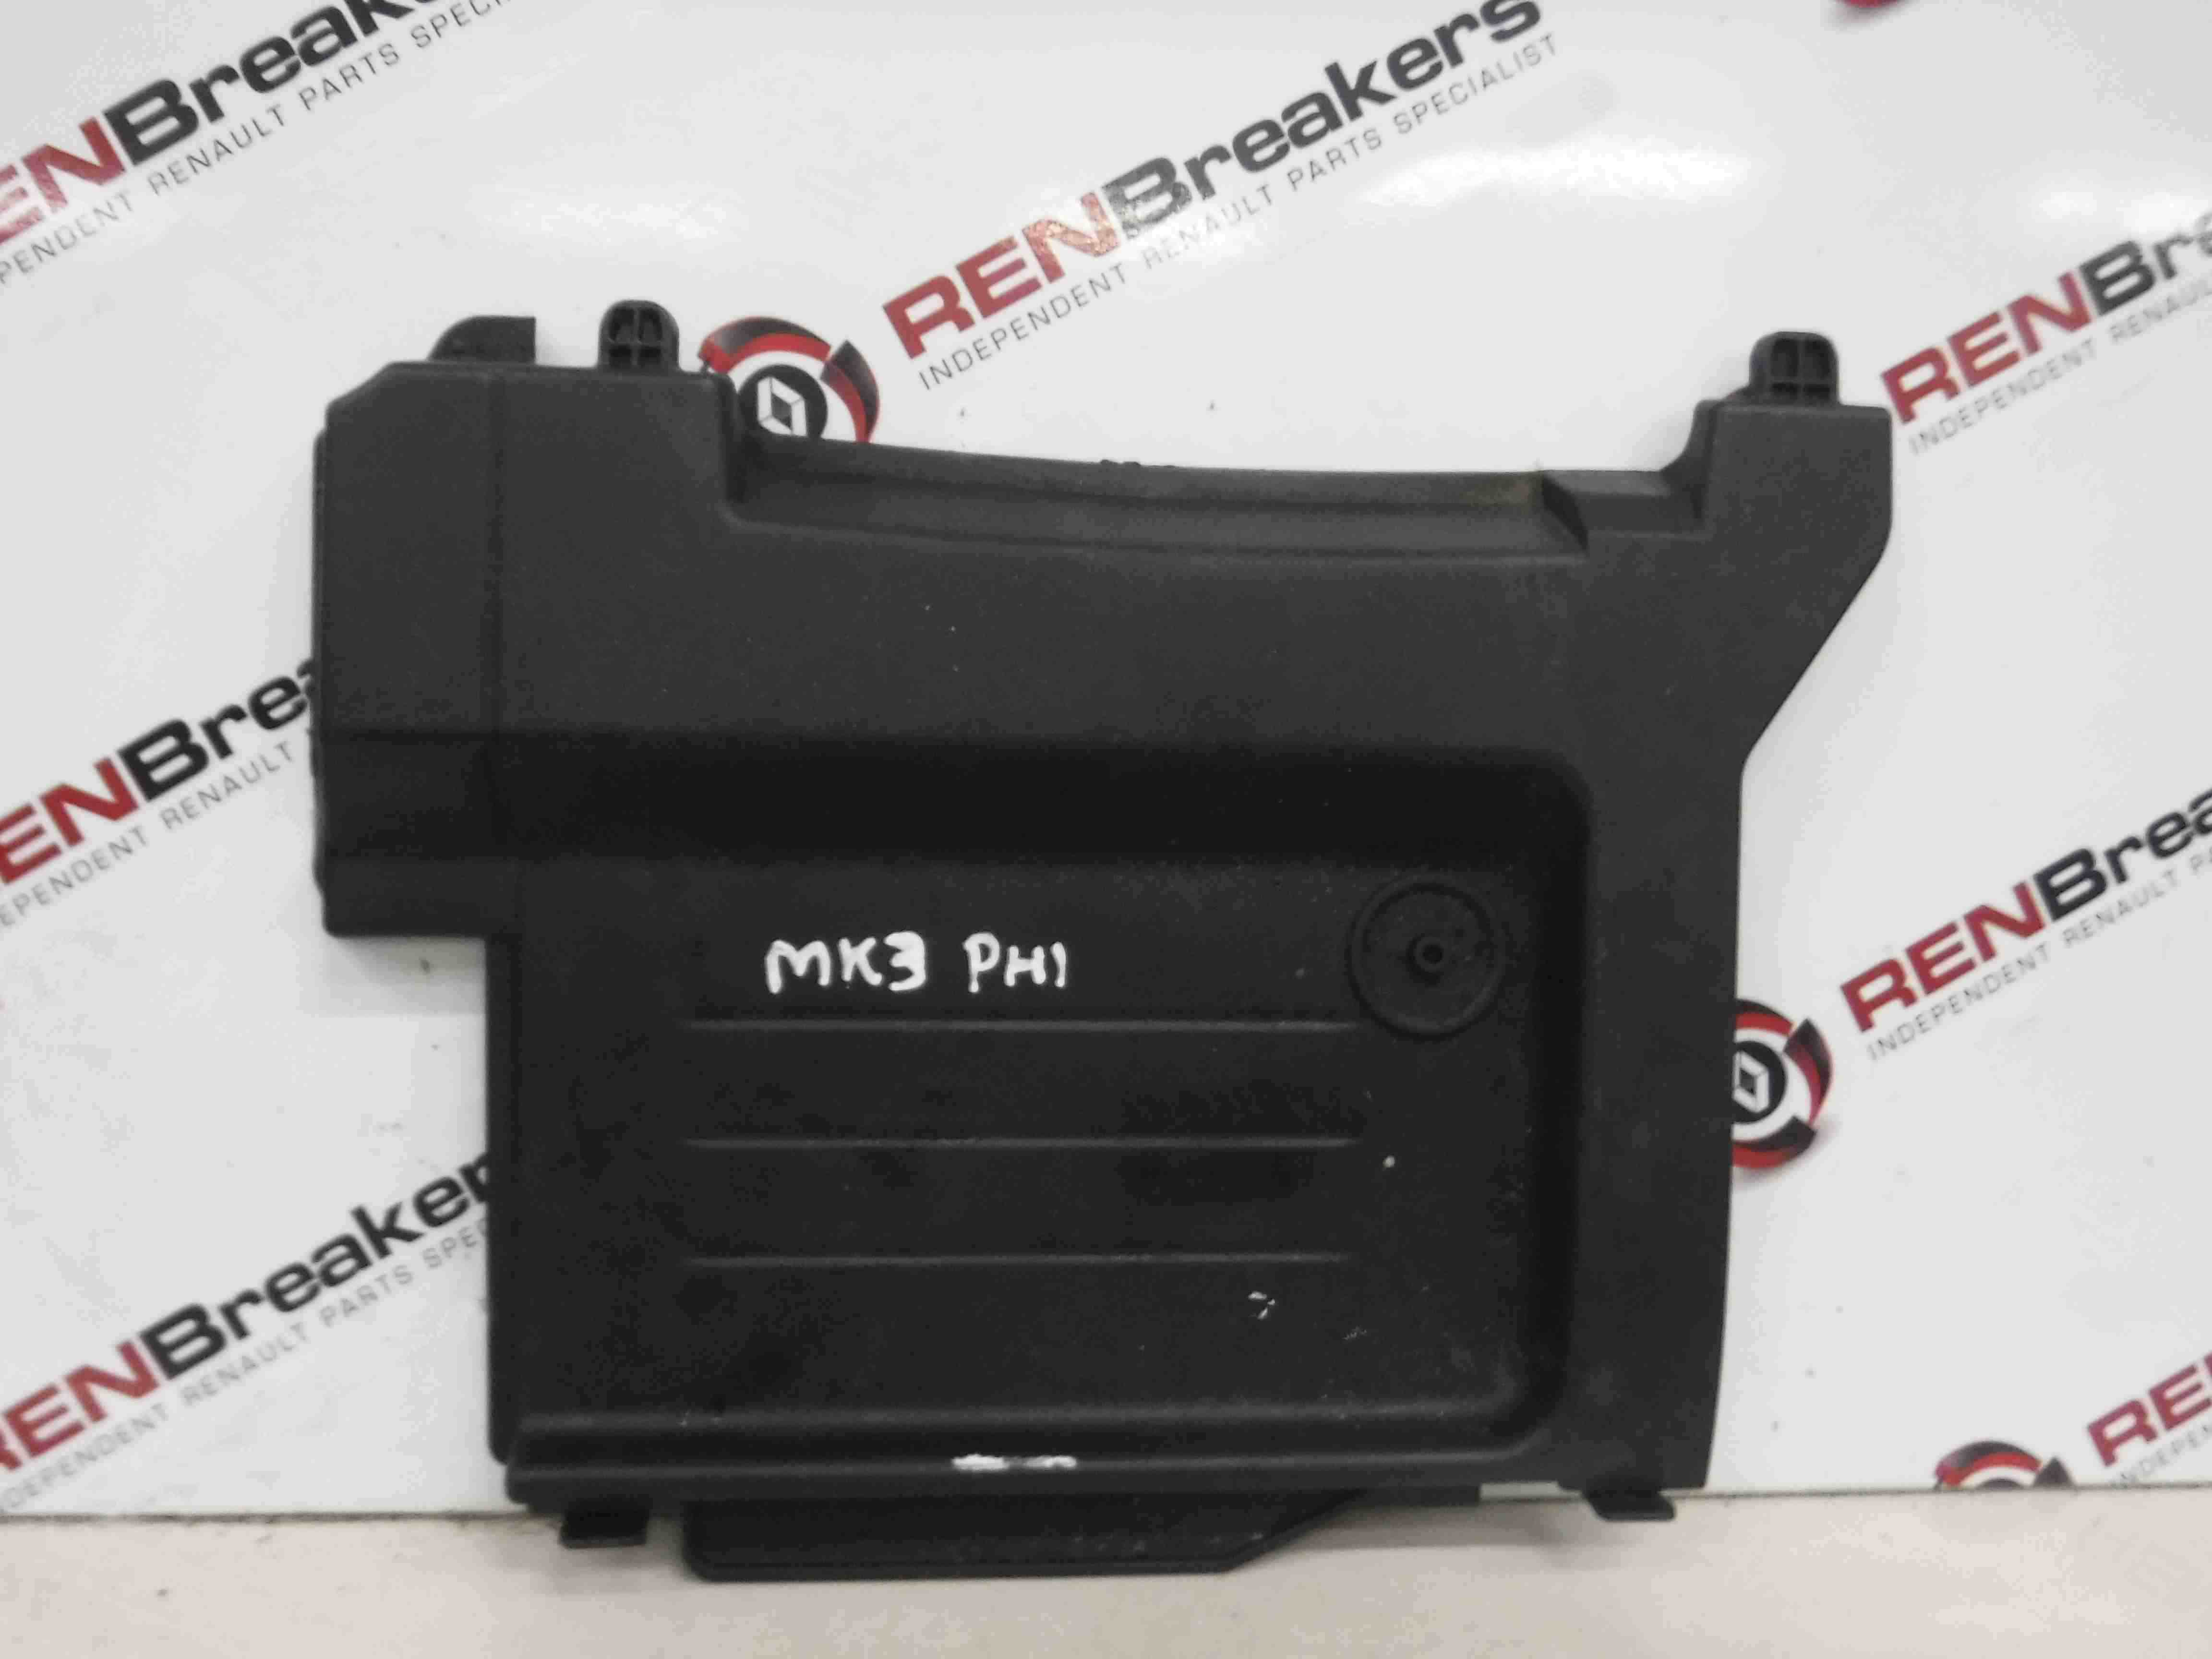 Renault Clio MK3 2005-2009 Battery Cover Lid Plastic 8200448021